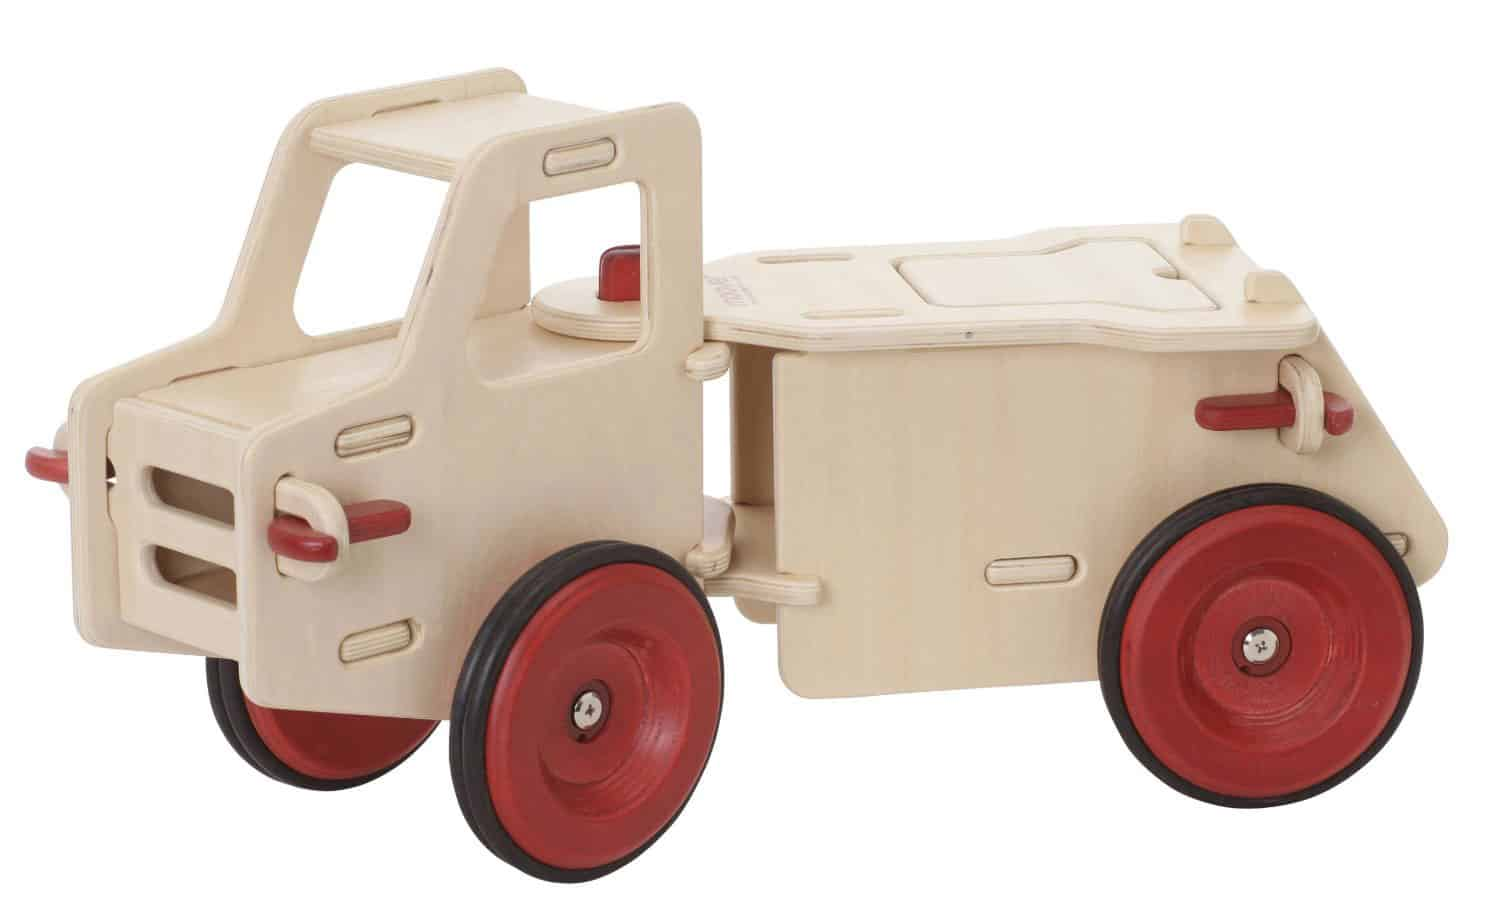 Elegant Here Are Different Styles Toddlers Reviews Toddlers Amazon Ride On Toys Wooden Toddlers Ride On Toys Yourbeginner Starter Wooden Toys baby Ride On Toys For Toddlers